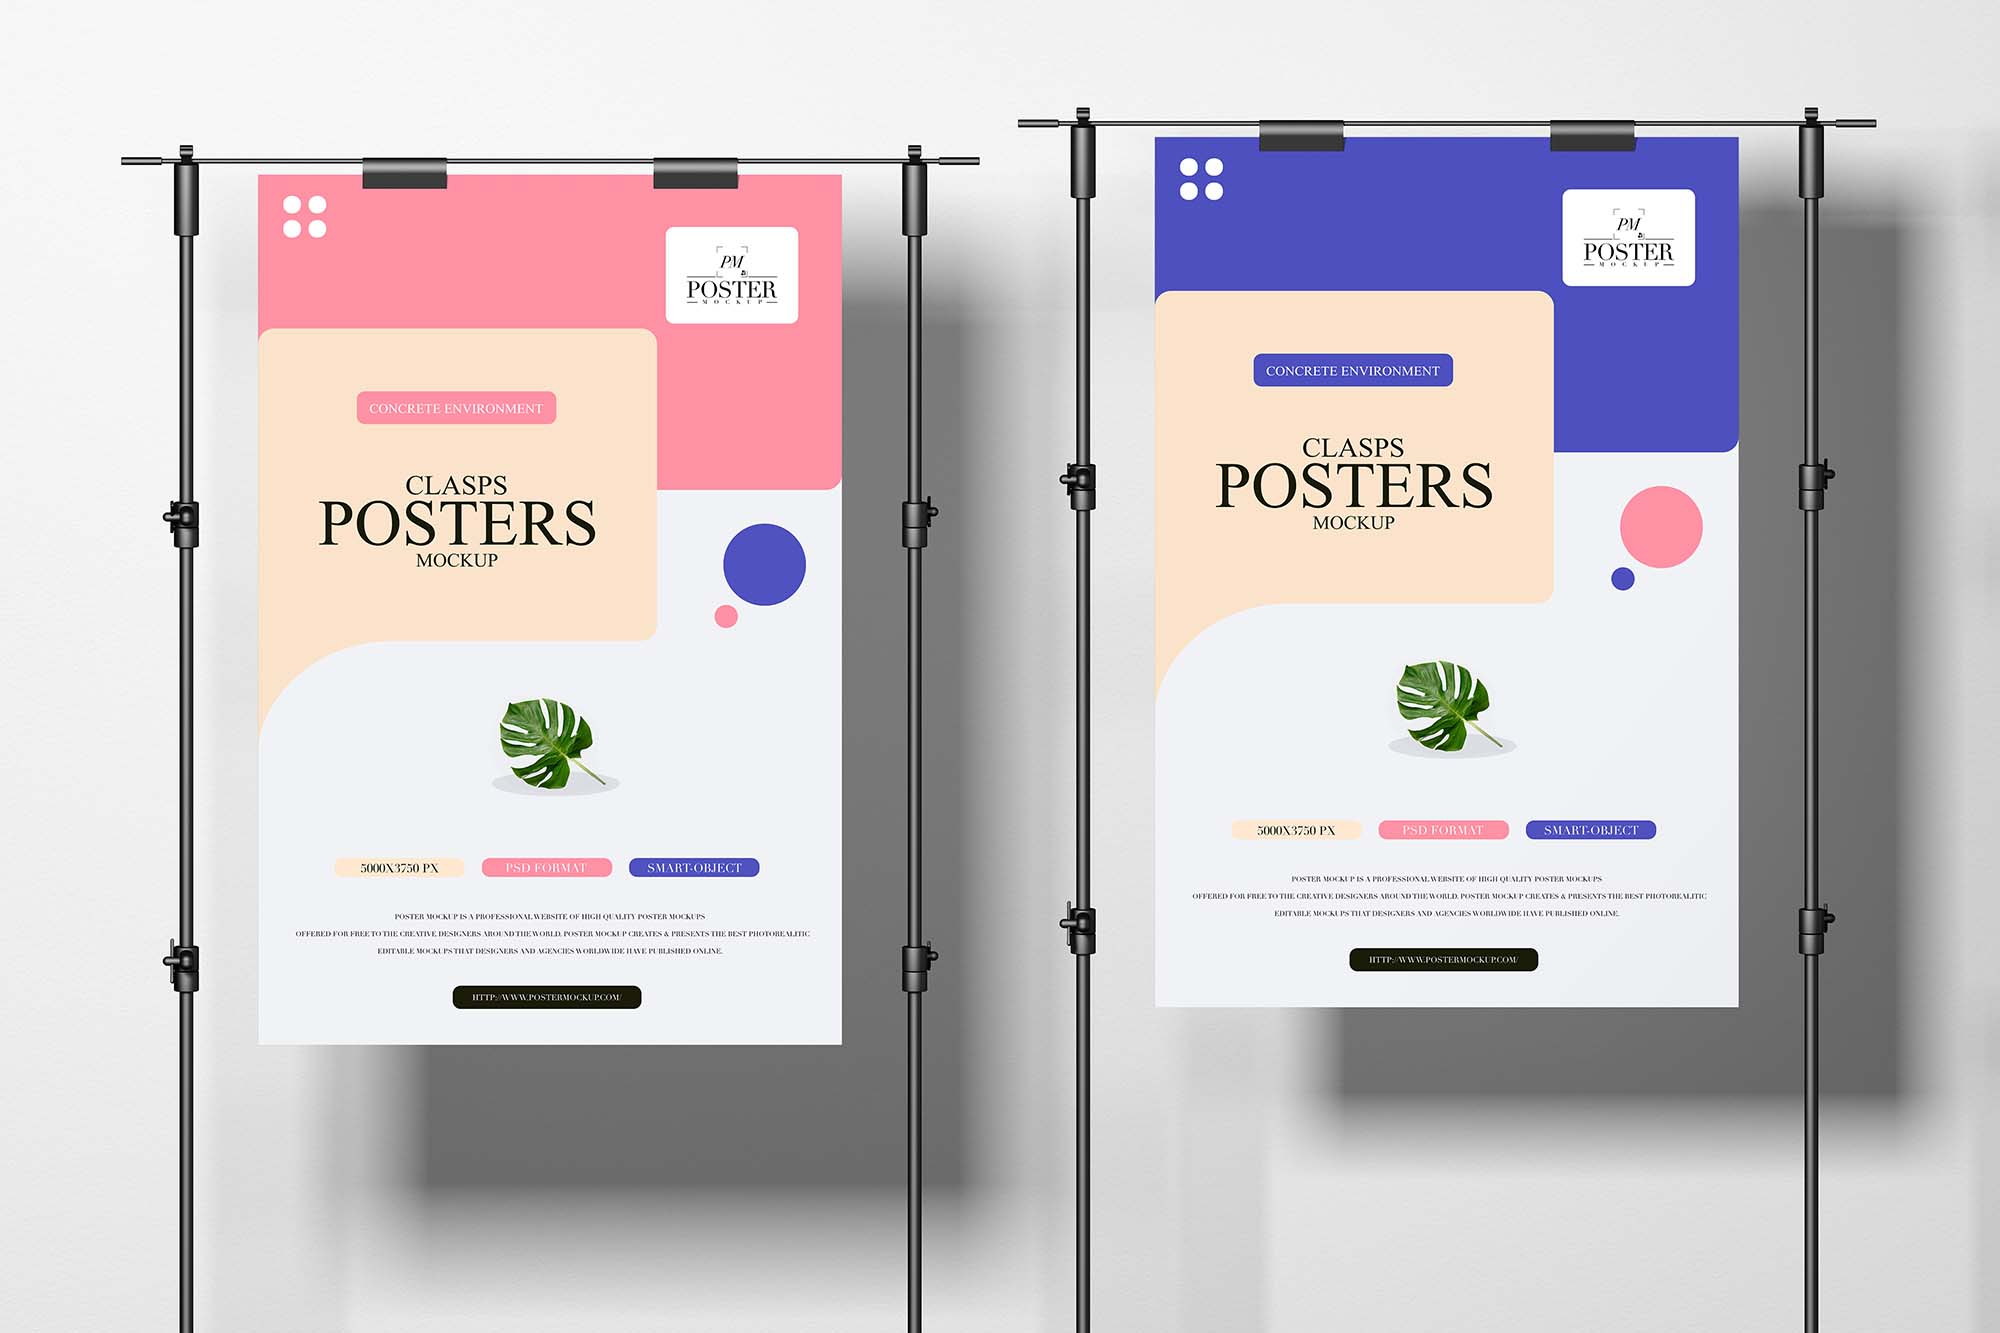 Clasps Posters Mockup